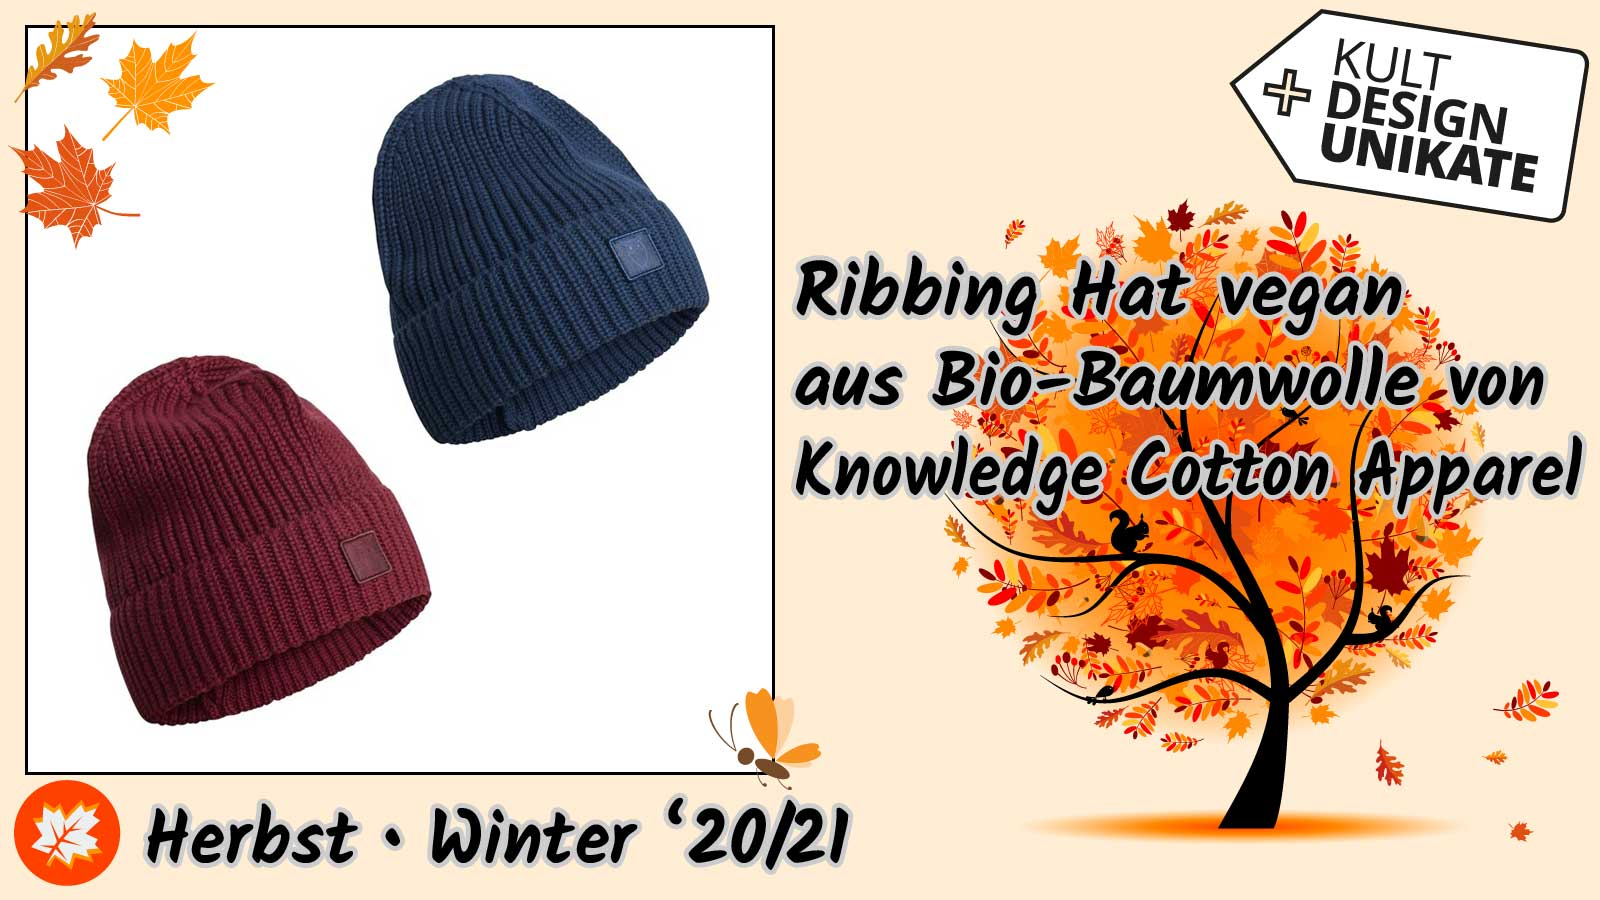 KCA-Ribbing-Hat-vegan